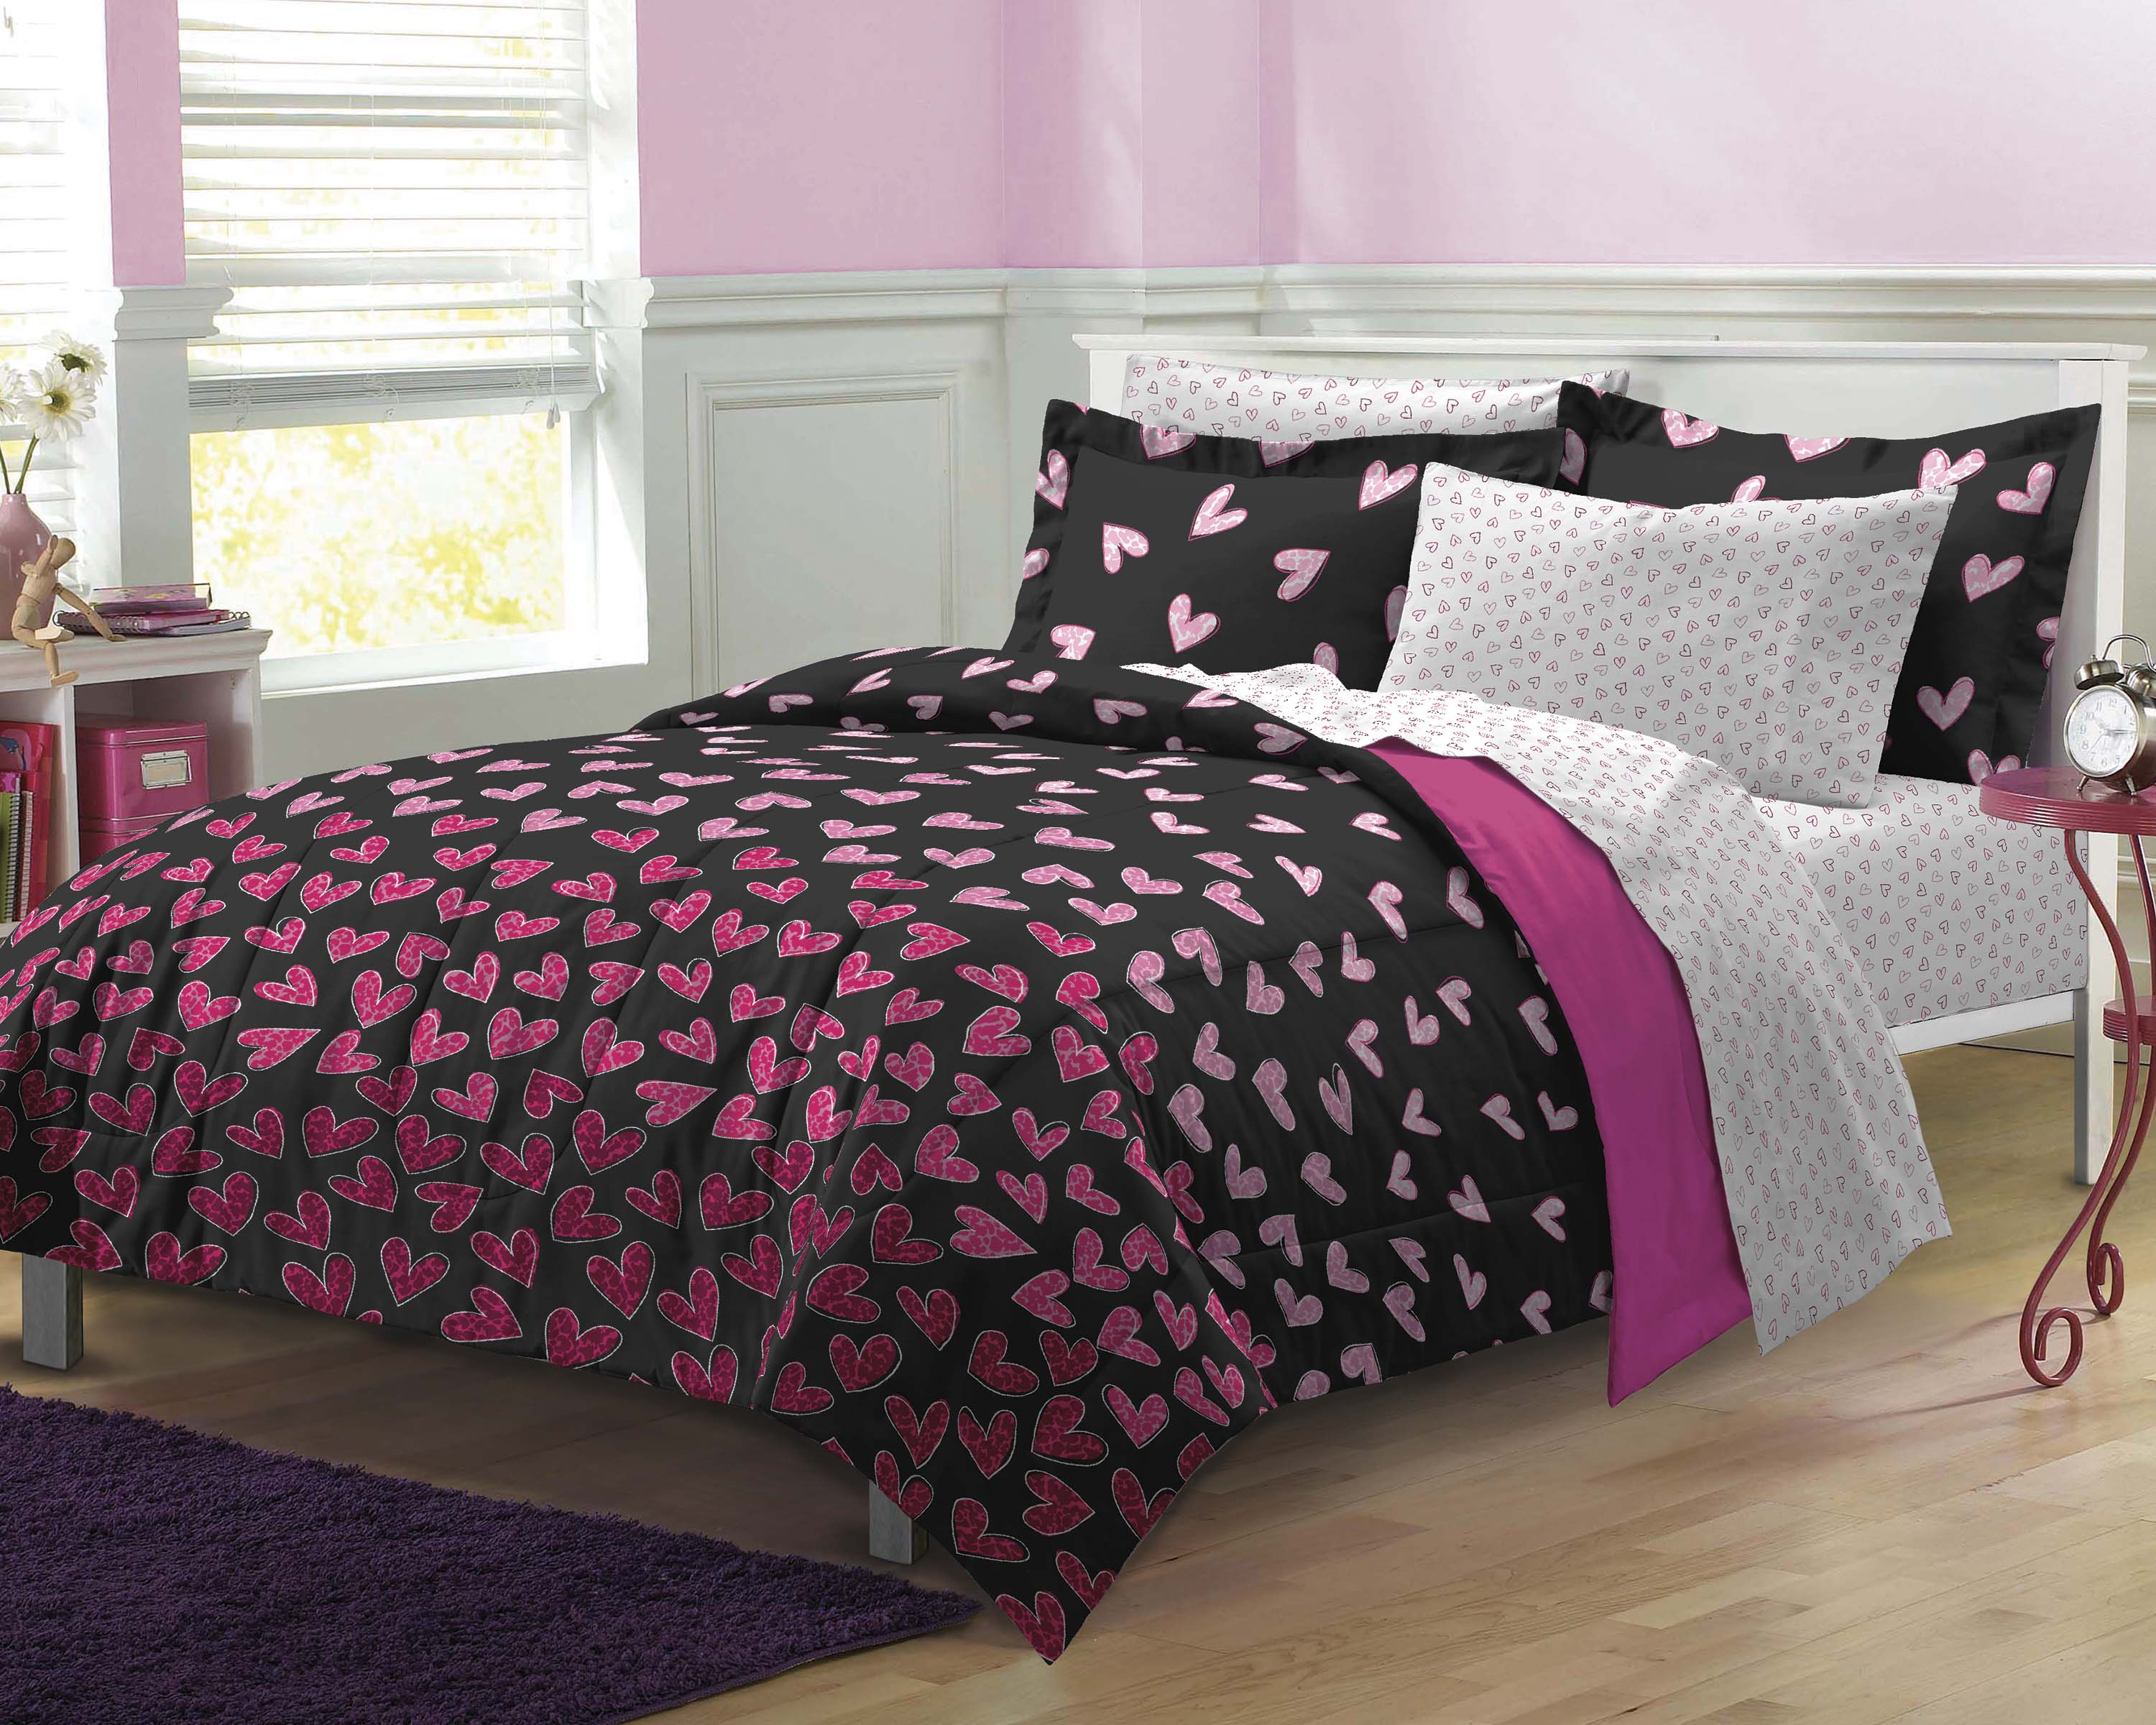 New hot pink wild hearts teen bedding comforter sheet set for Hot pink bedroom set